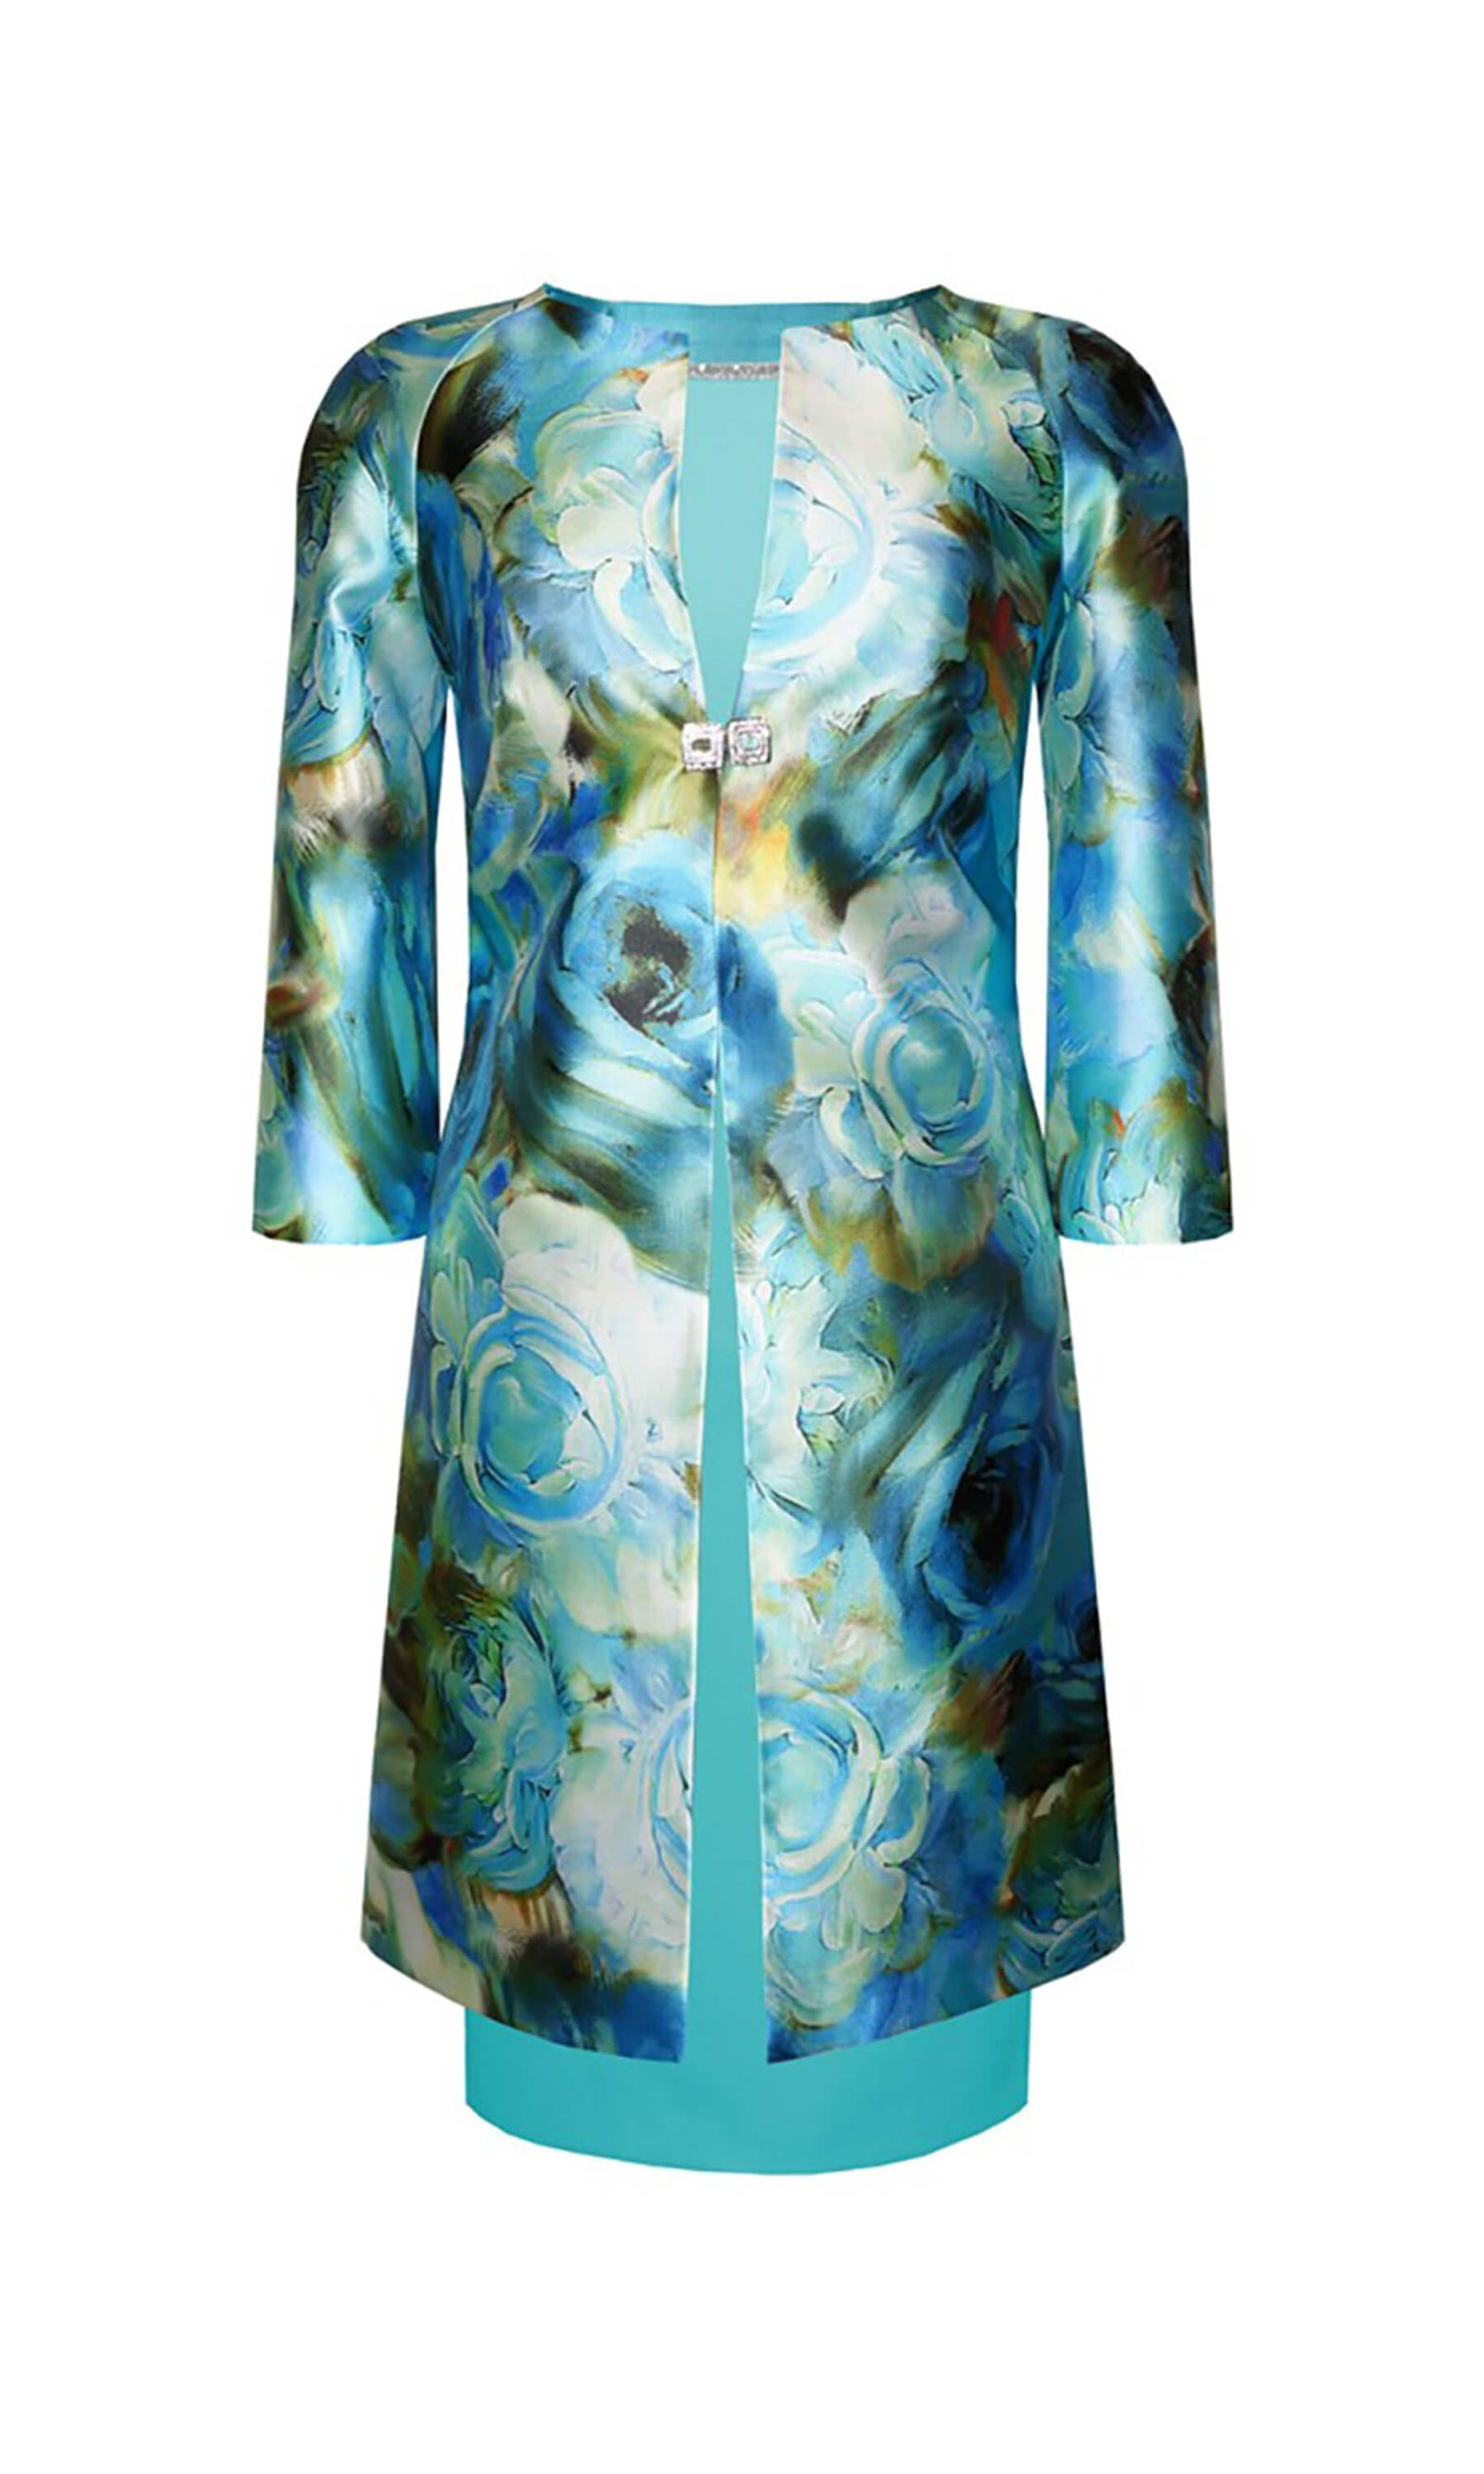 94756 Turquoise Carla Ruiz Dress & Print Frock Coat